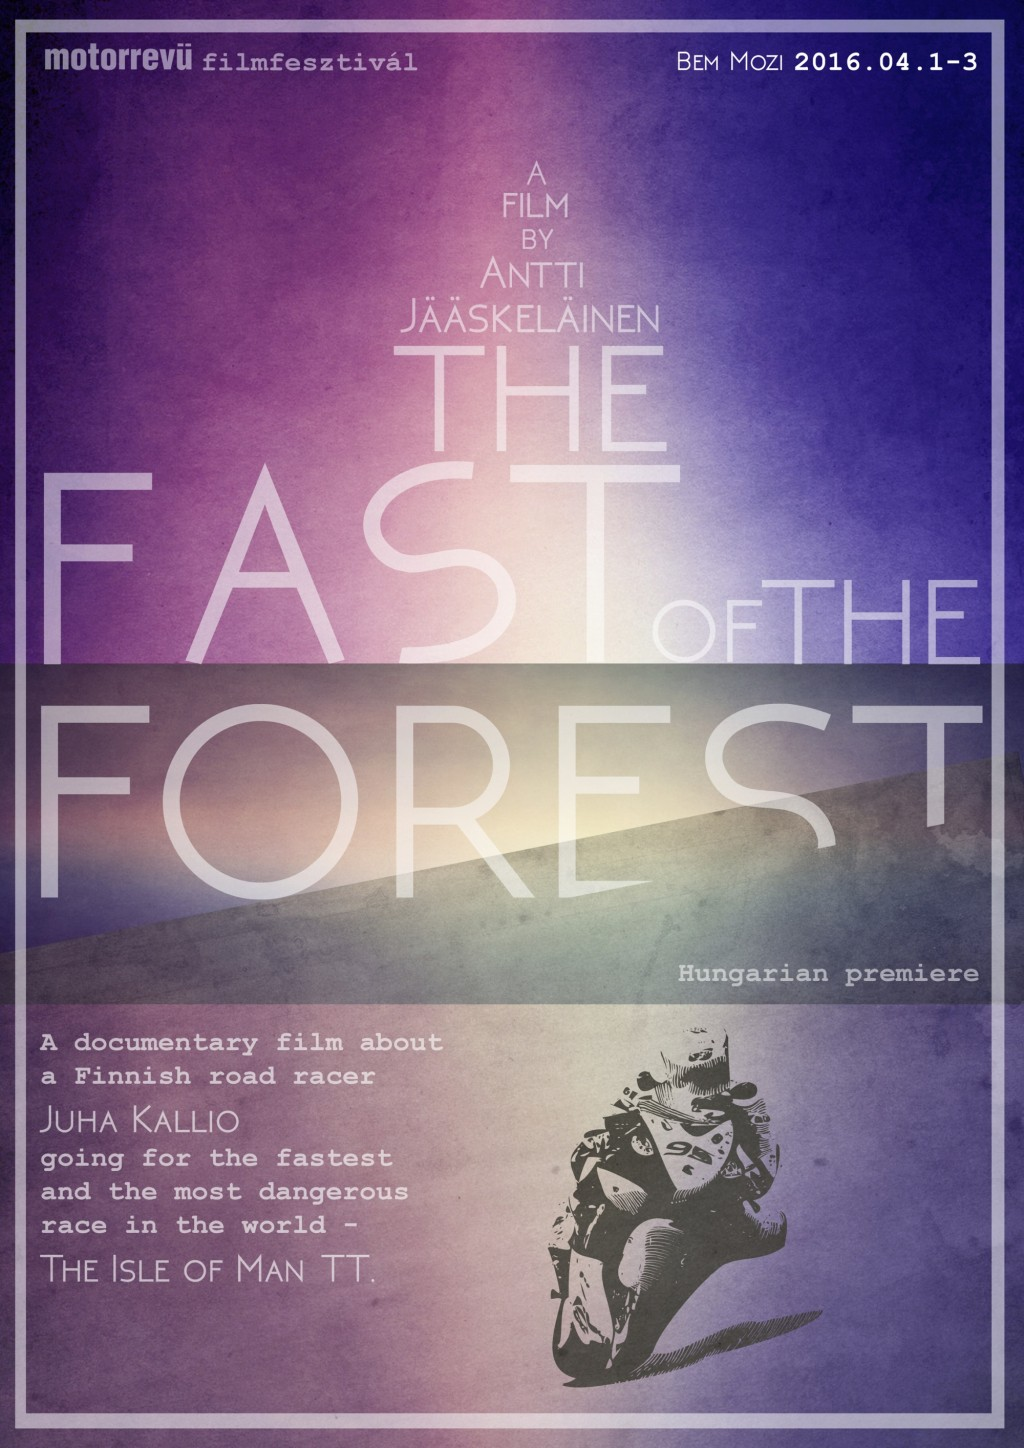 Fast of the Forest